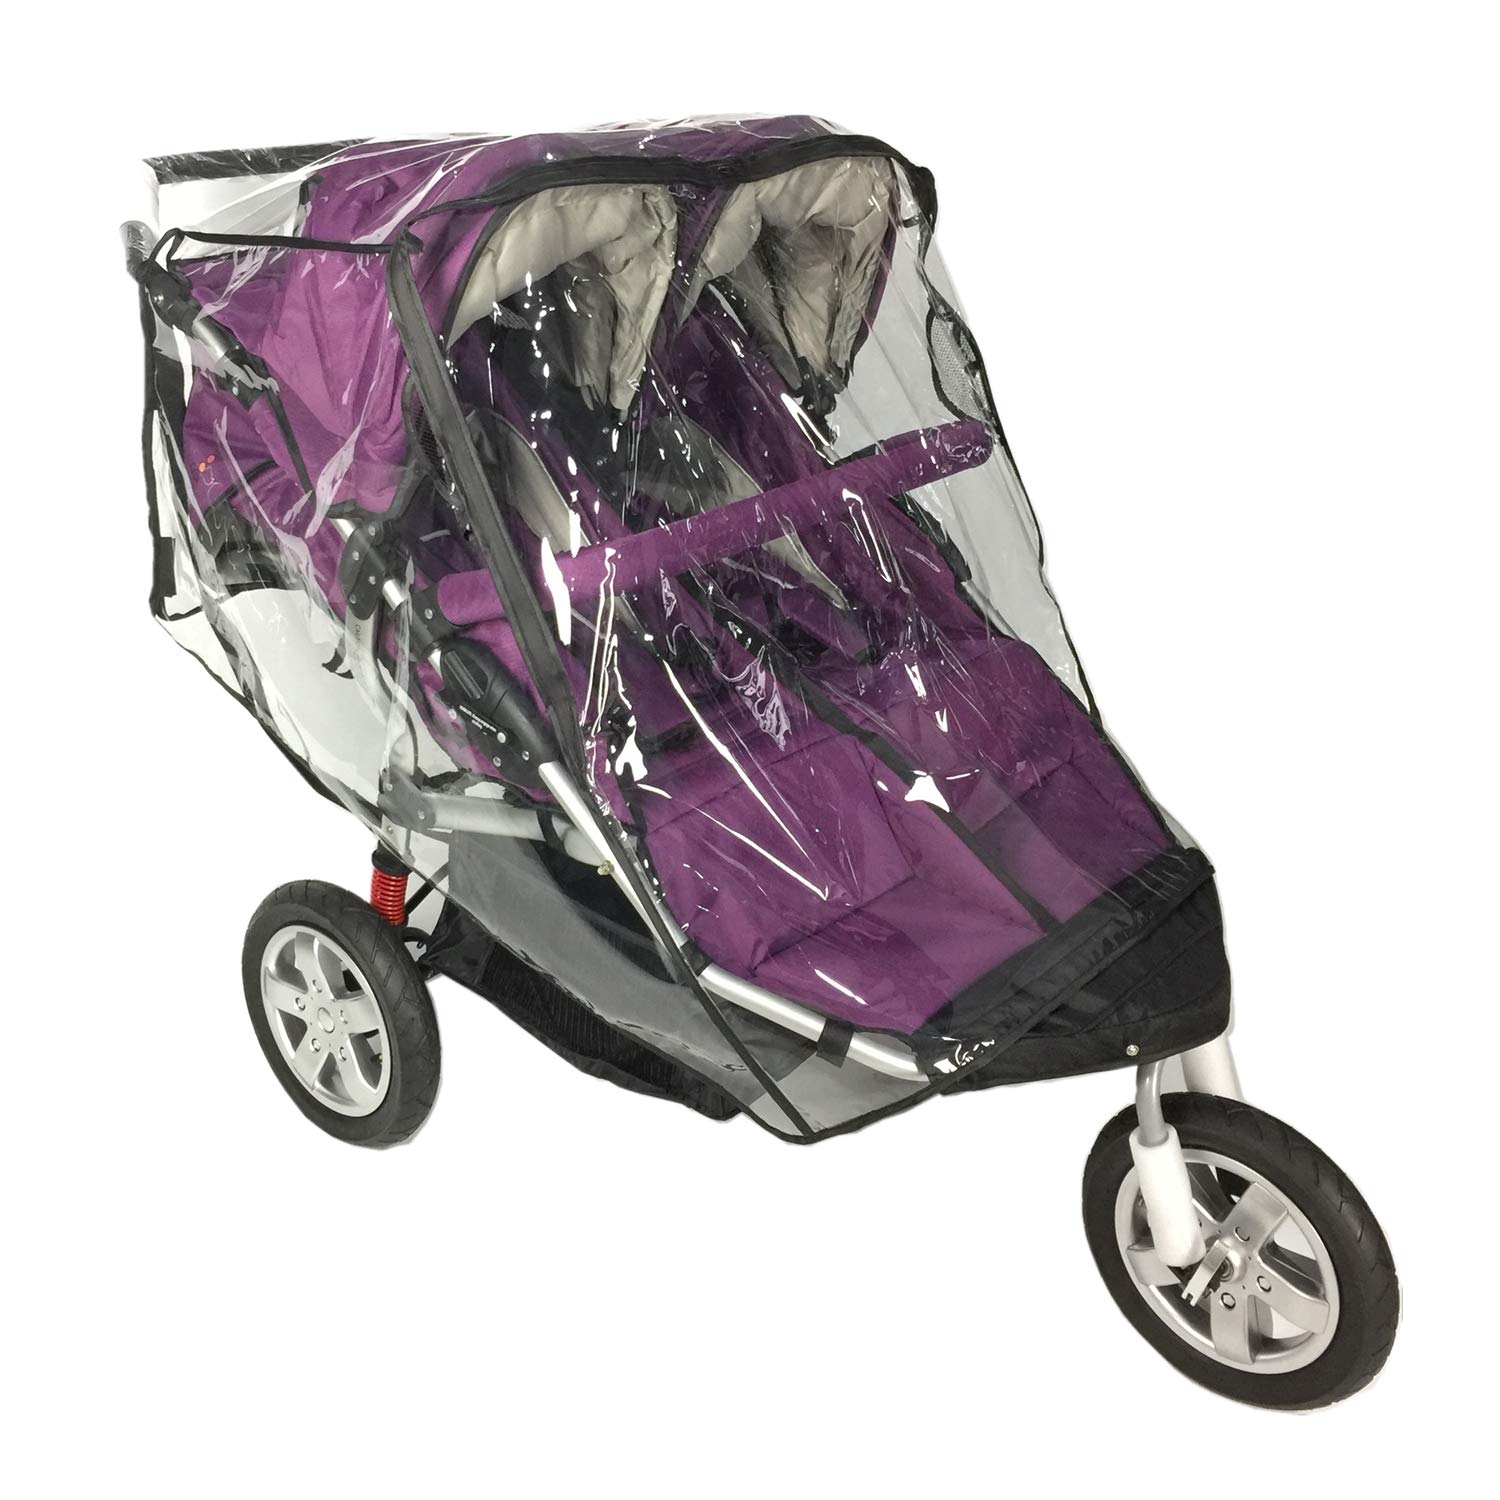 Rain Cover for Double Stroller,Universal Size Weather Shield for Side by Side Double Baby Stroller.